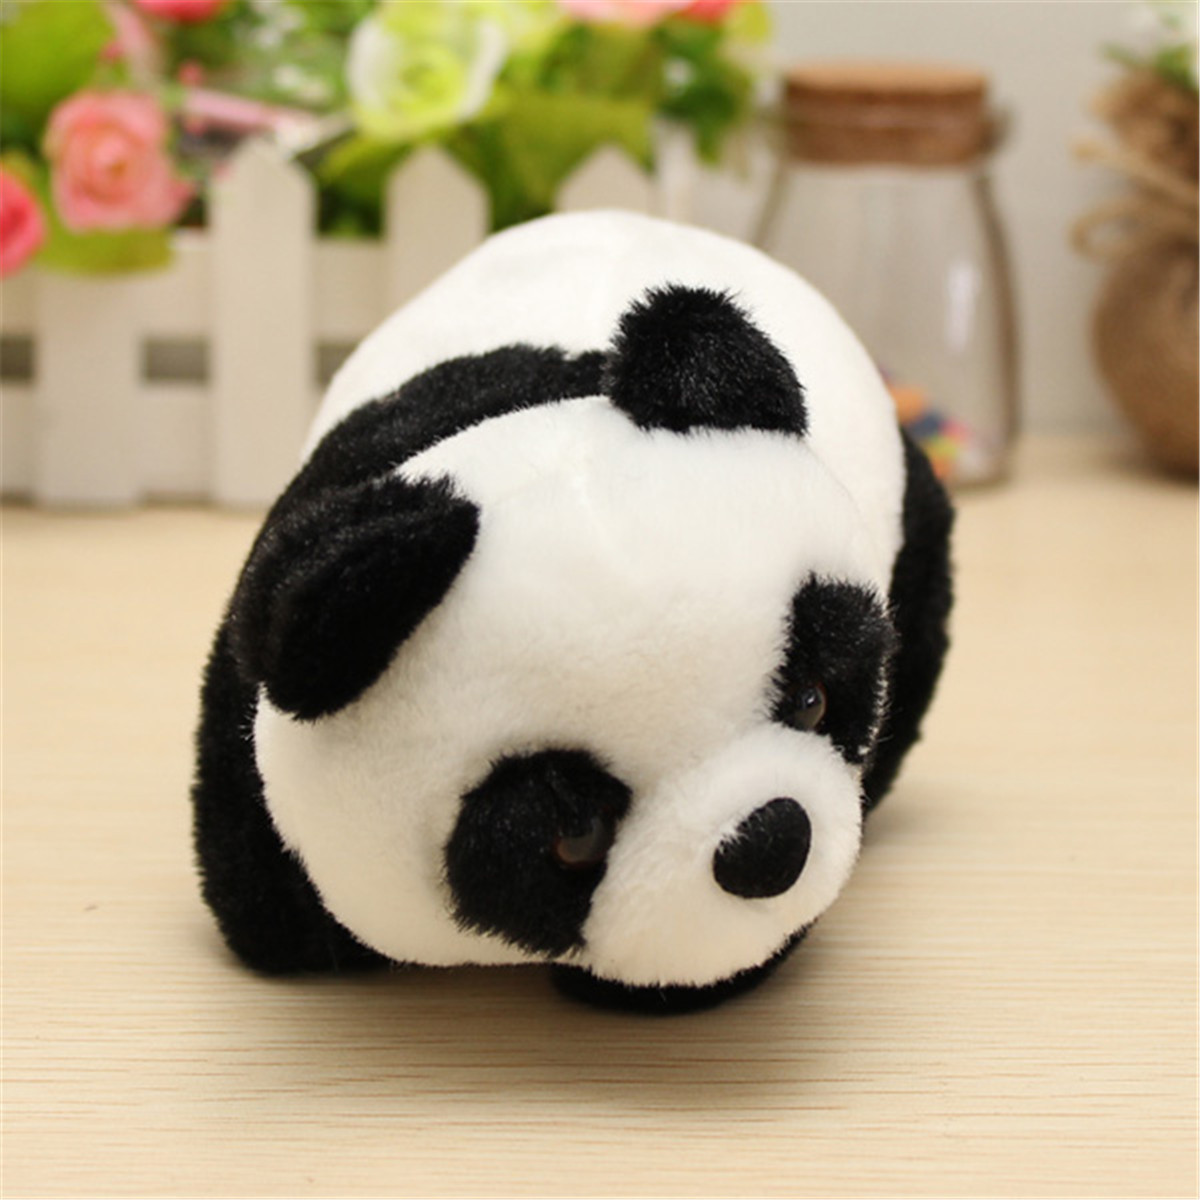 Animal Toy Pillow : Cute Soft Plush Stuffed Panda Animal Doll Toy Pillow Holiday Gift 16cm 25cm 31cm eBay